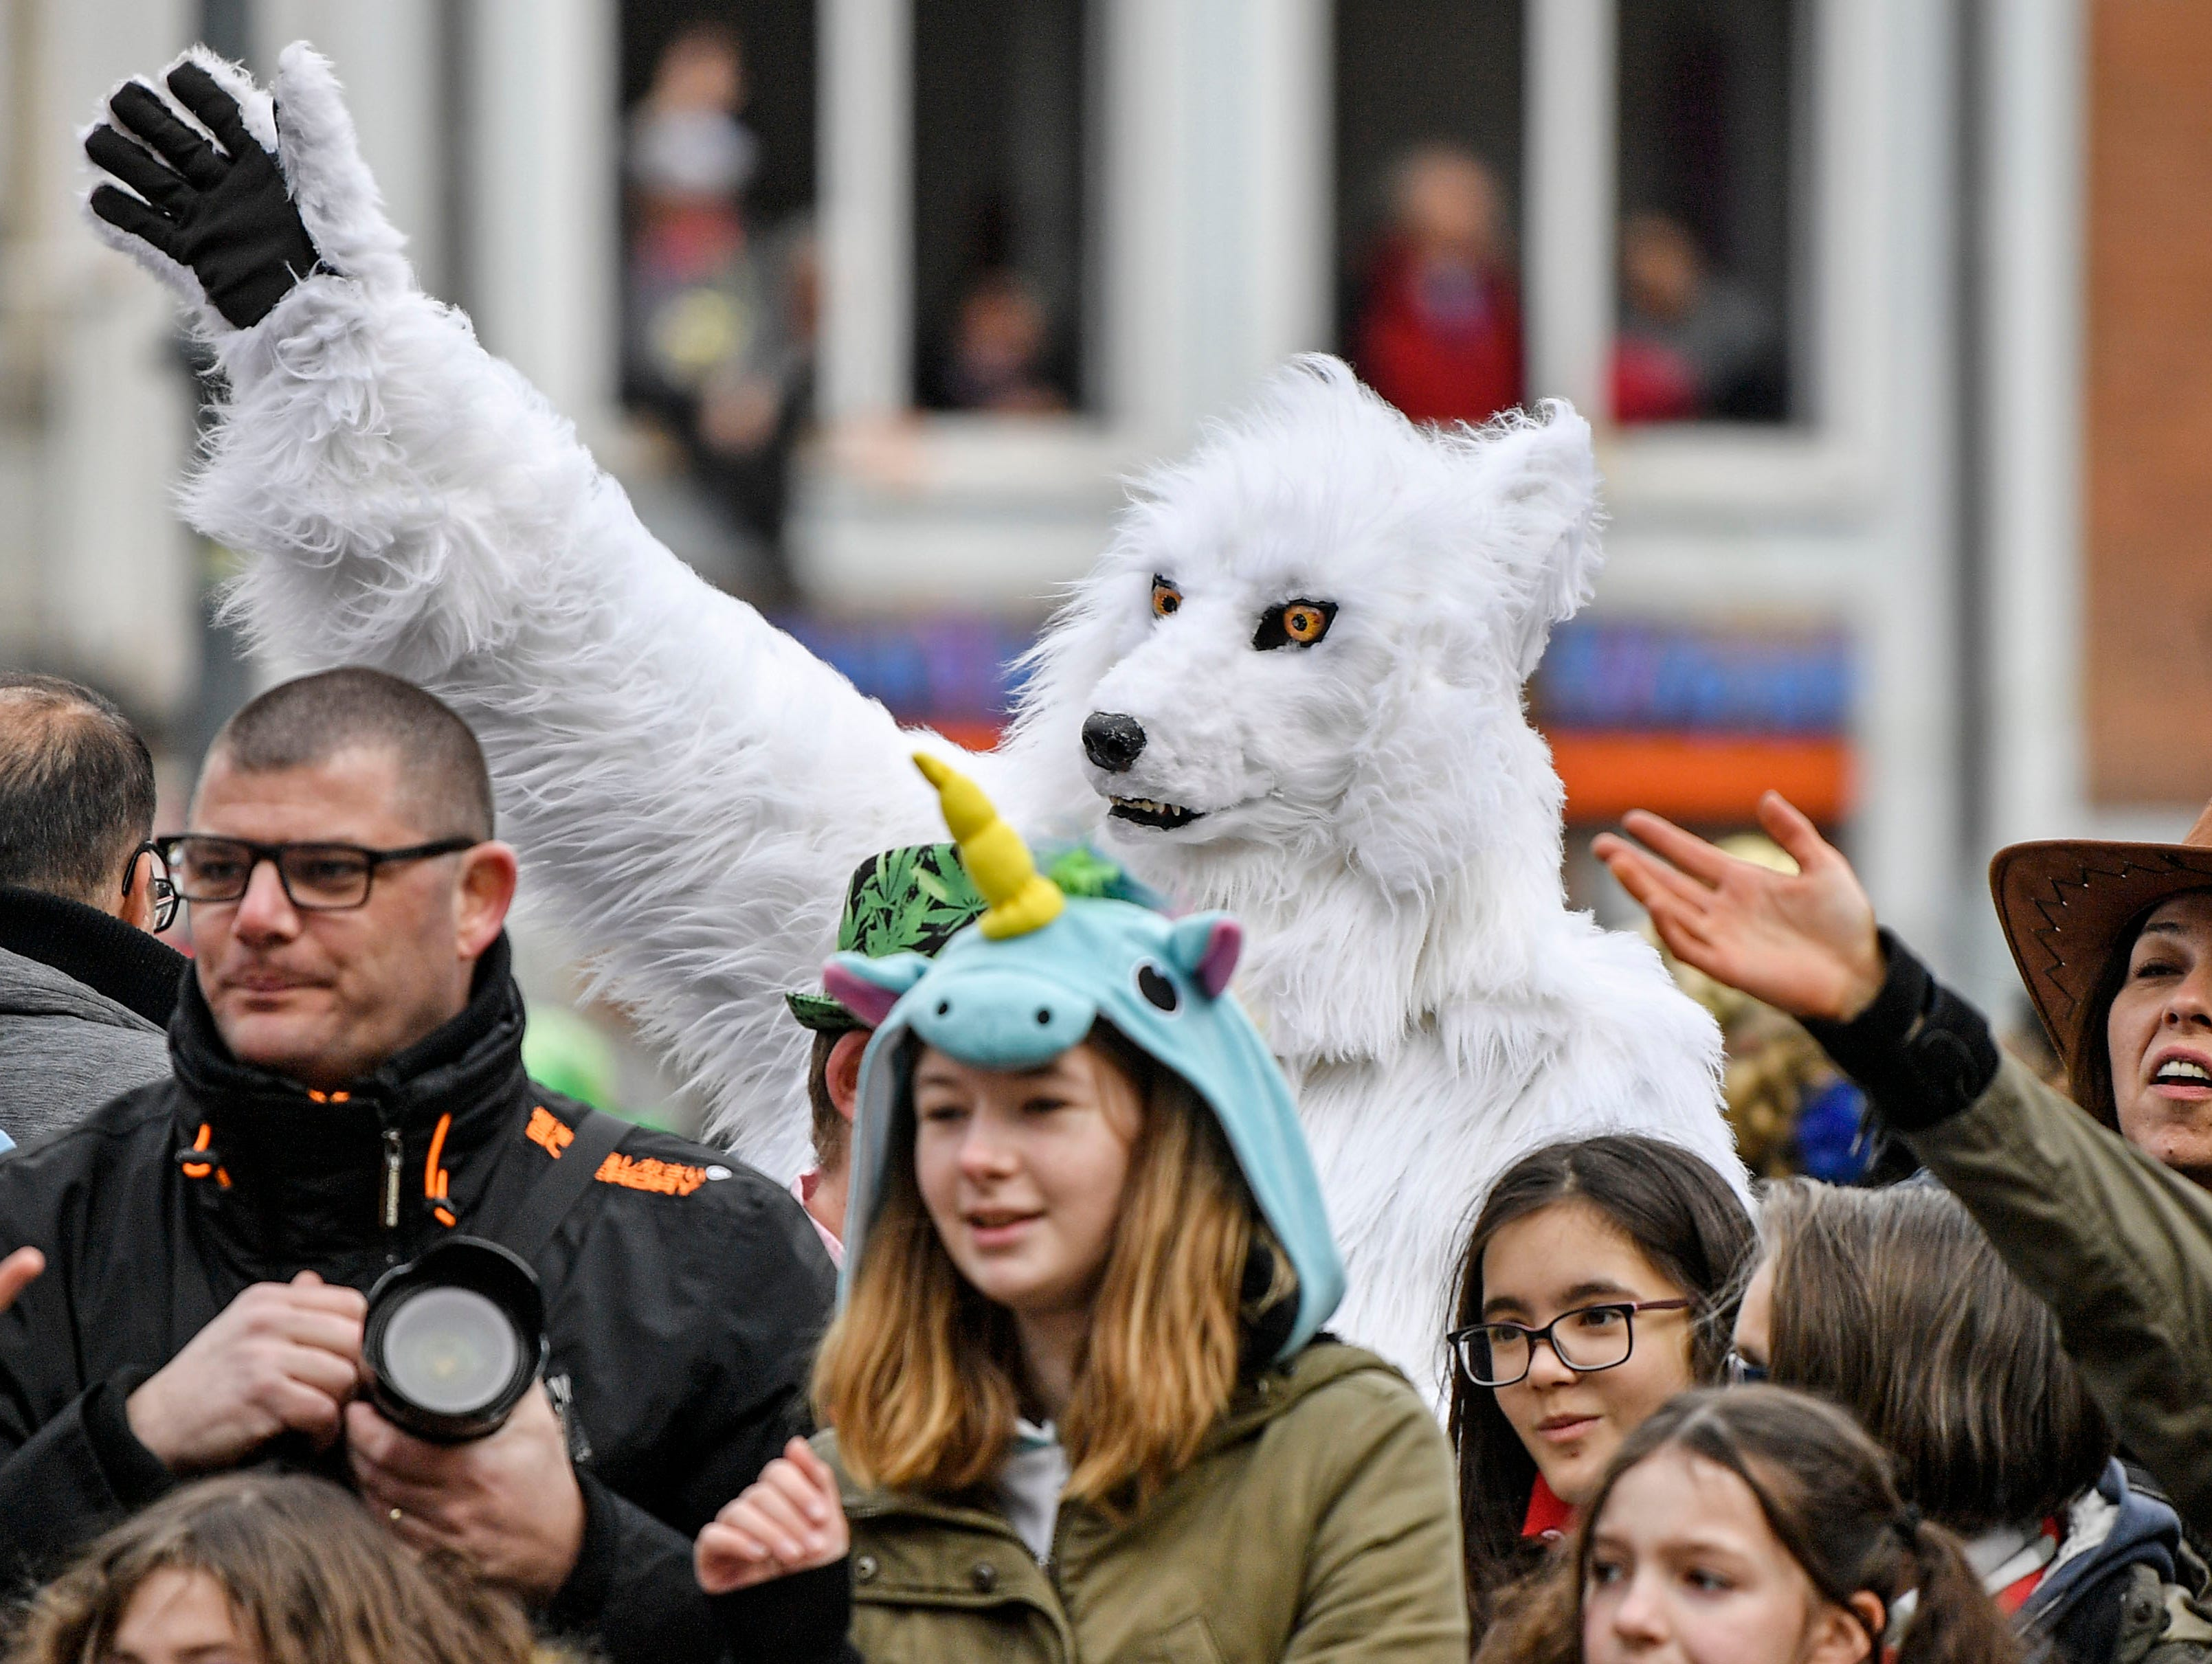 A reveler dressed as a white wolf begs for sweets during the traditional carnival parade in Duesseldorf, Germany, on Monday, March 4, 2019. The street spectacles in the carnival centers of Duesseldorf, Mainz and Cologne, watched by hundreds of thousands of people, are the highlights of Germany's carnival season on Rosemonday.